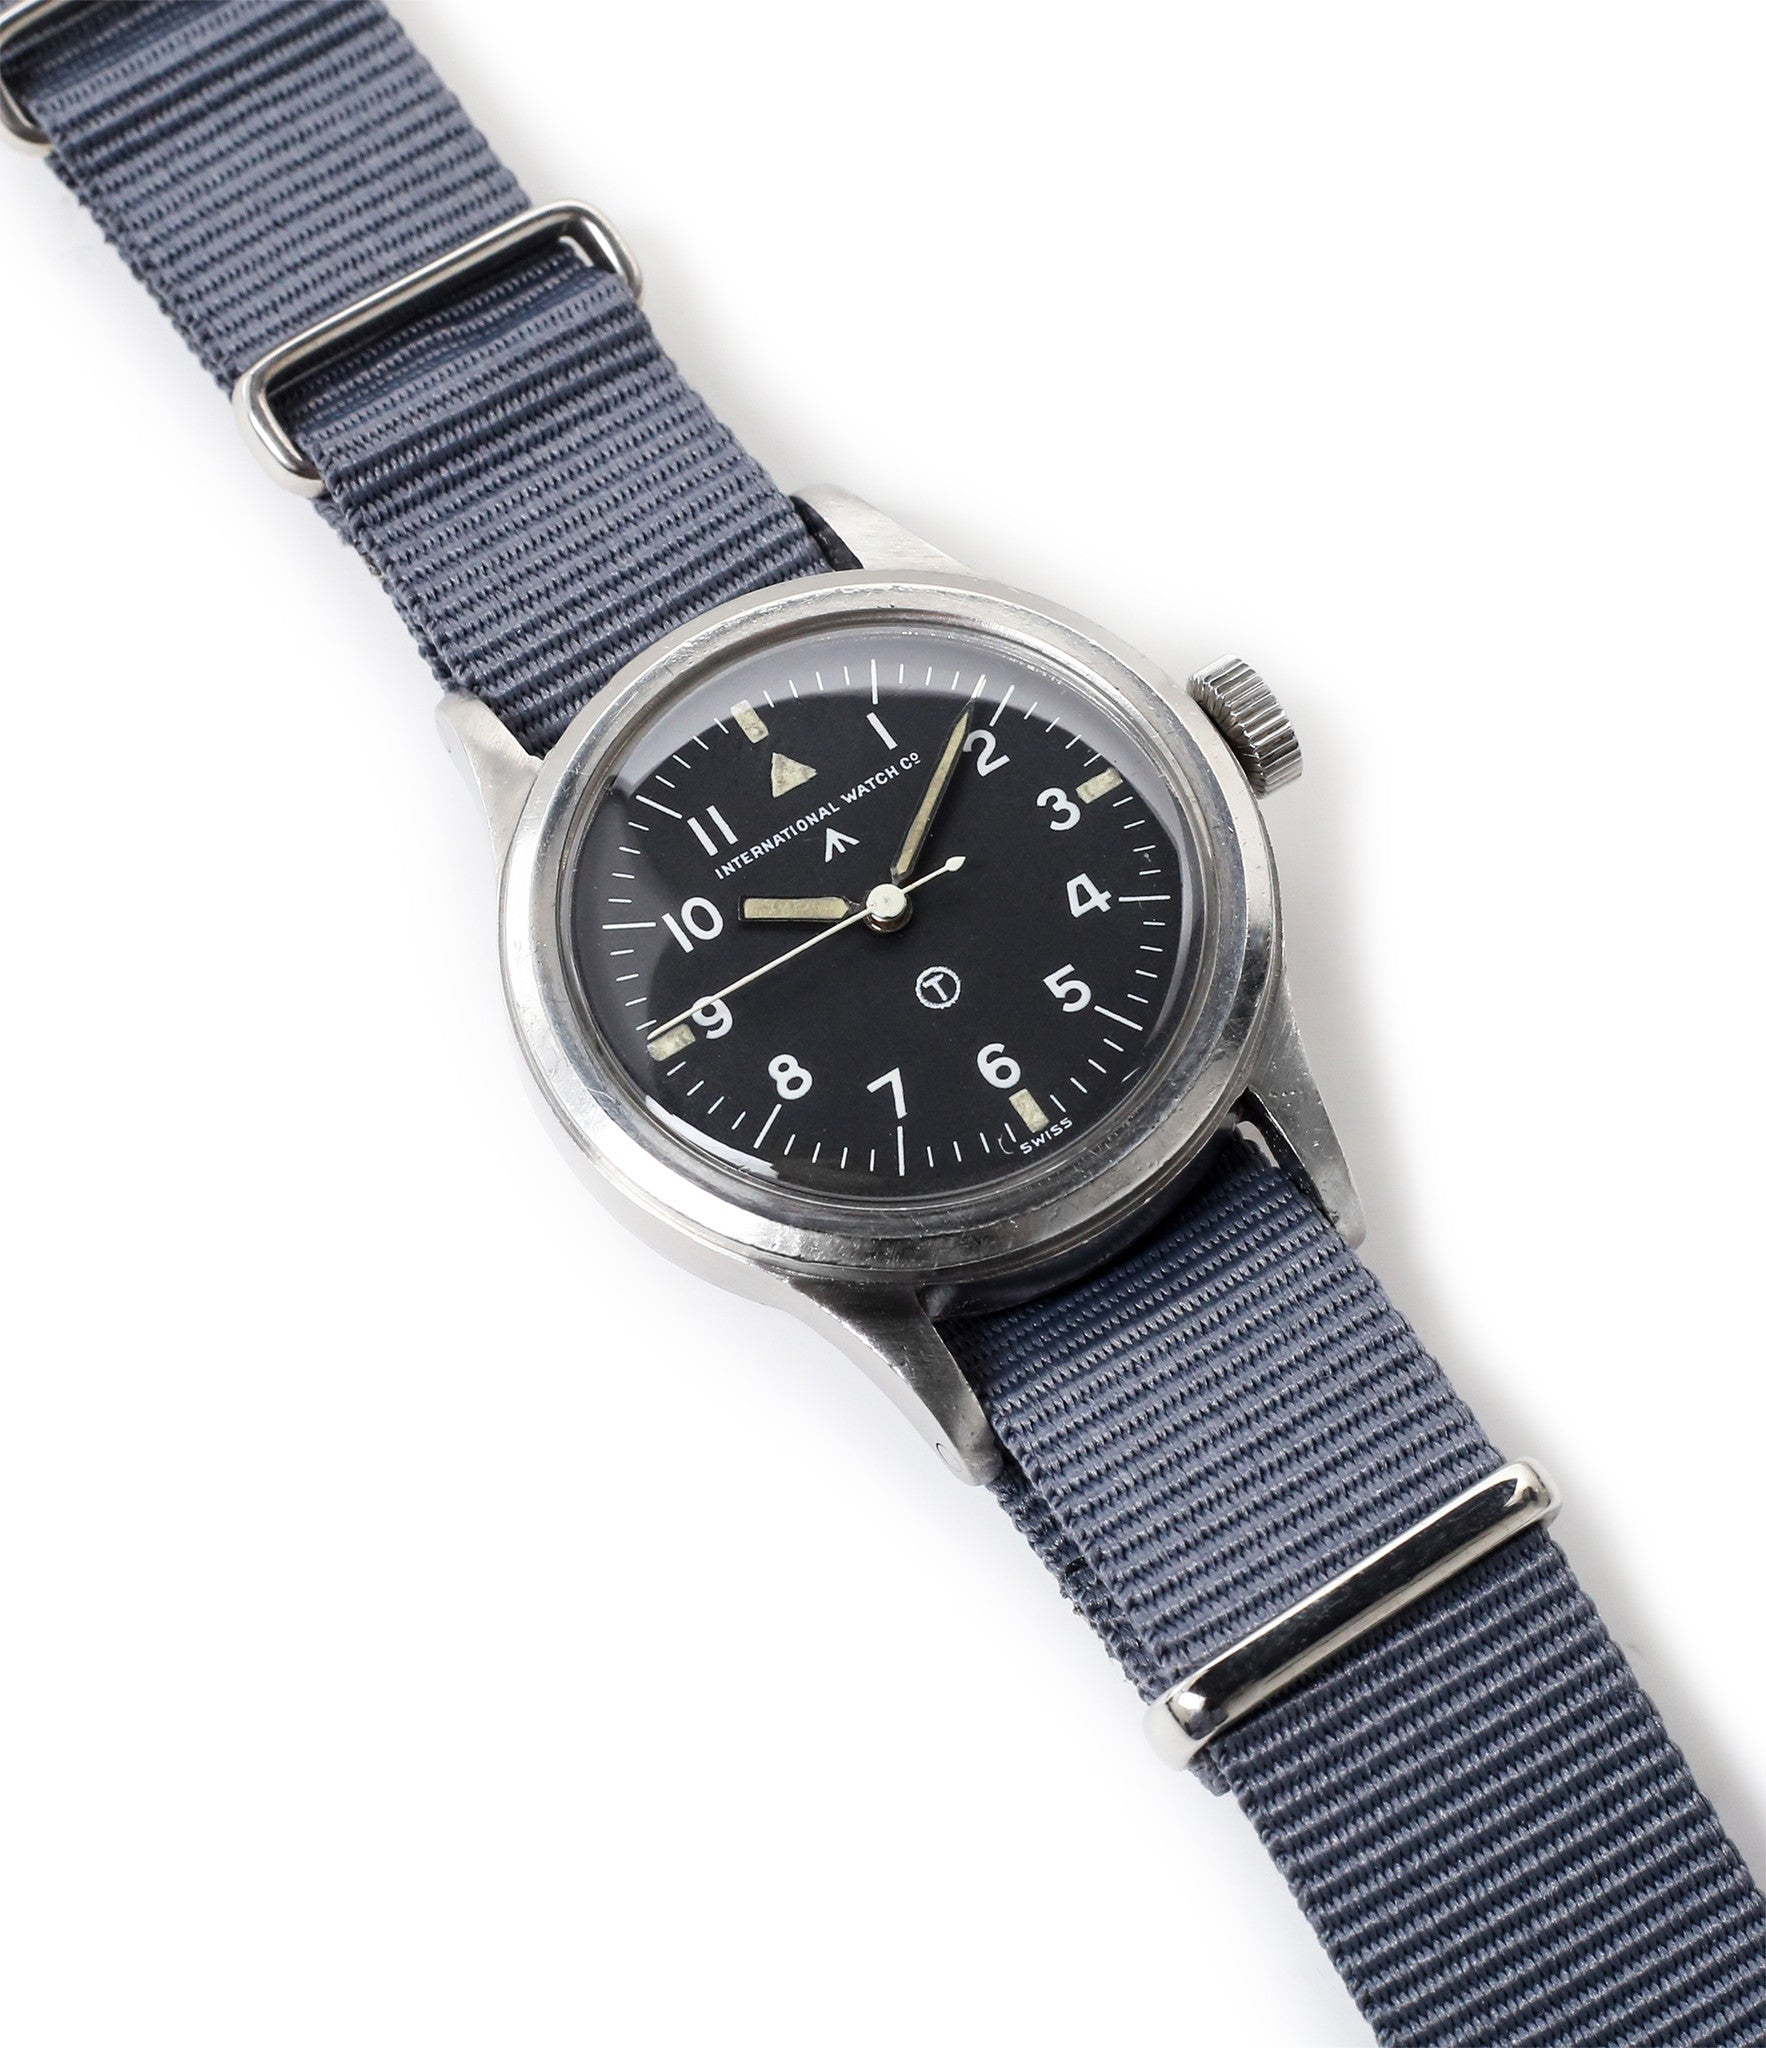 selling IWC Mark XI 6B/346 vintage military RAF pilot steel watch online at A Collected Man London vintage military watch specialist